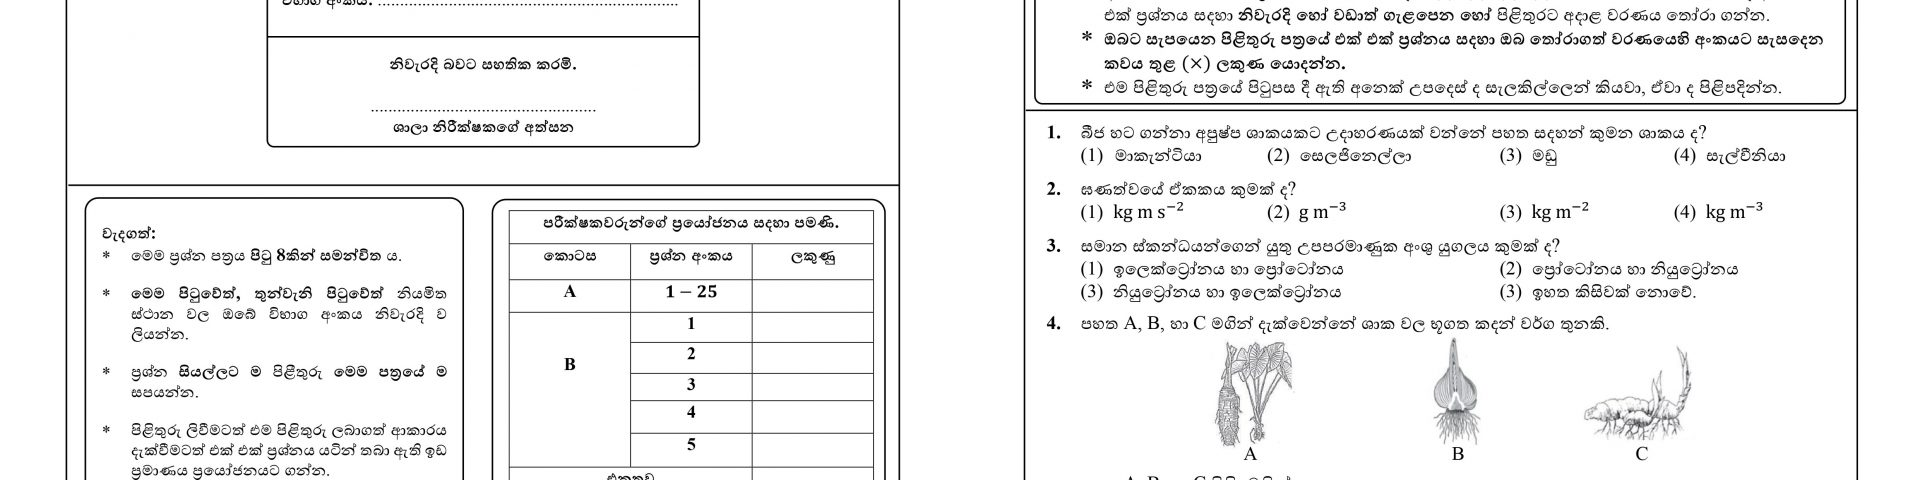 2021 O/L Maths & Science Papers Download. PDF